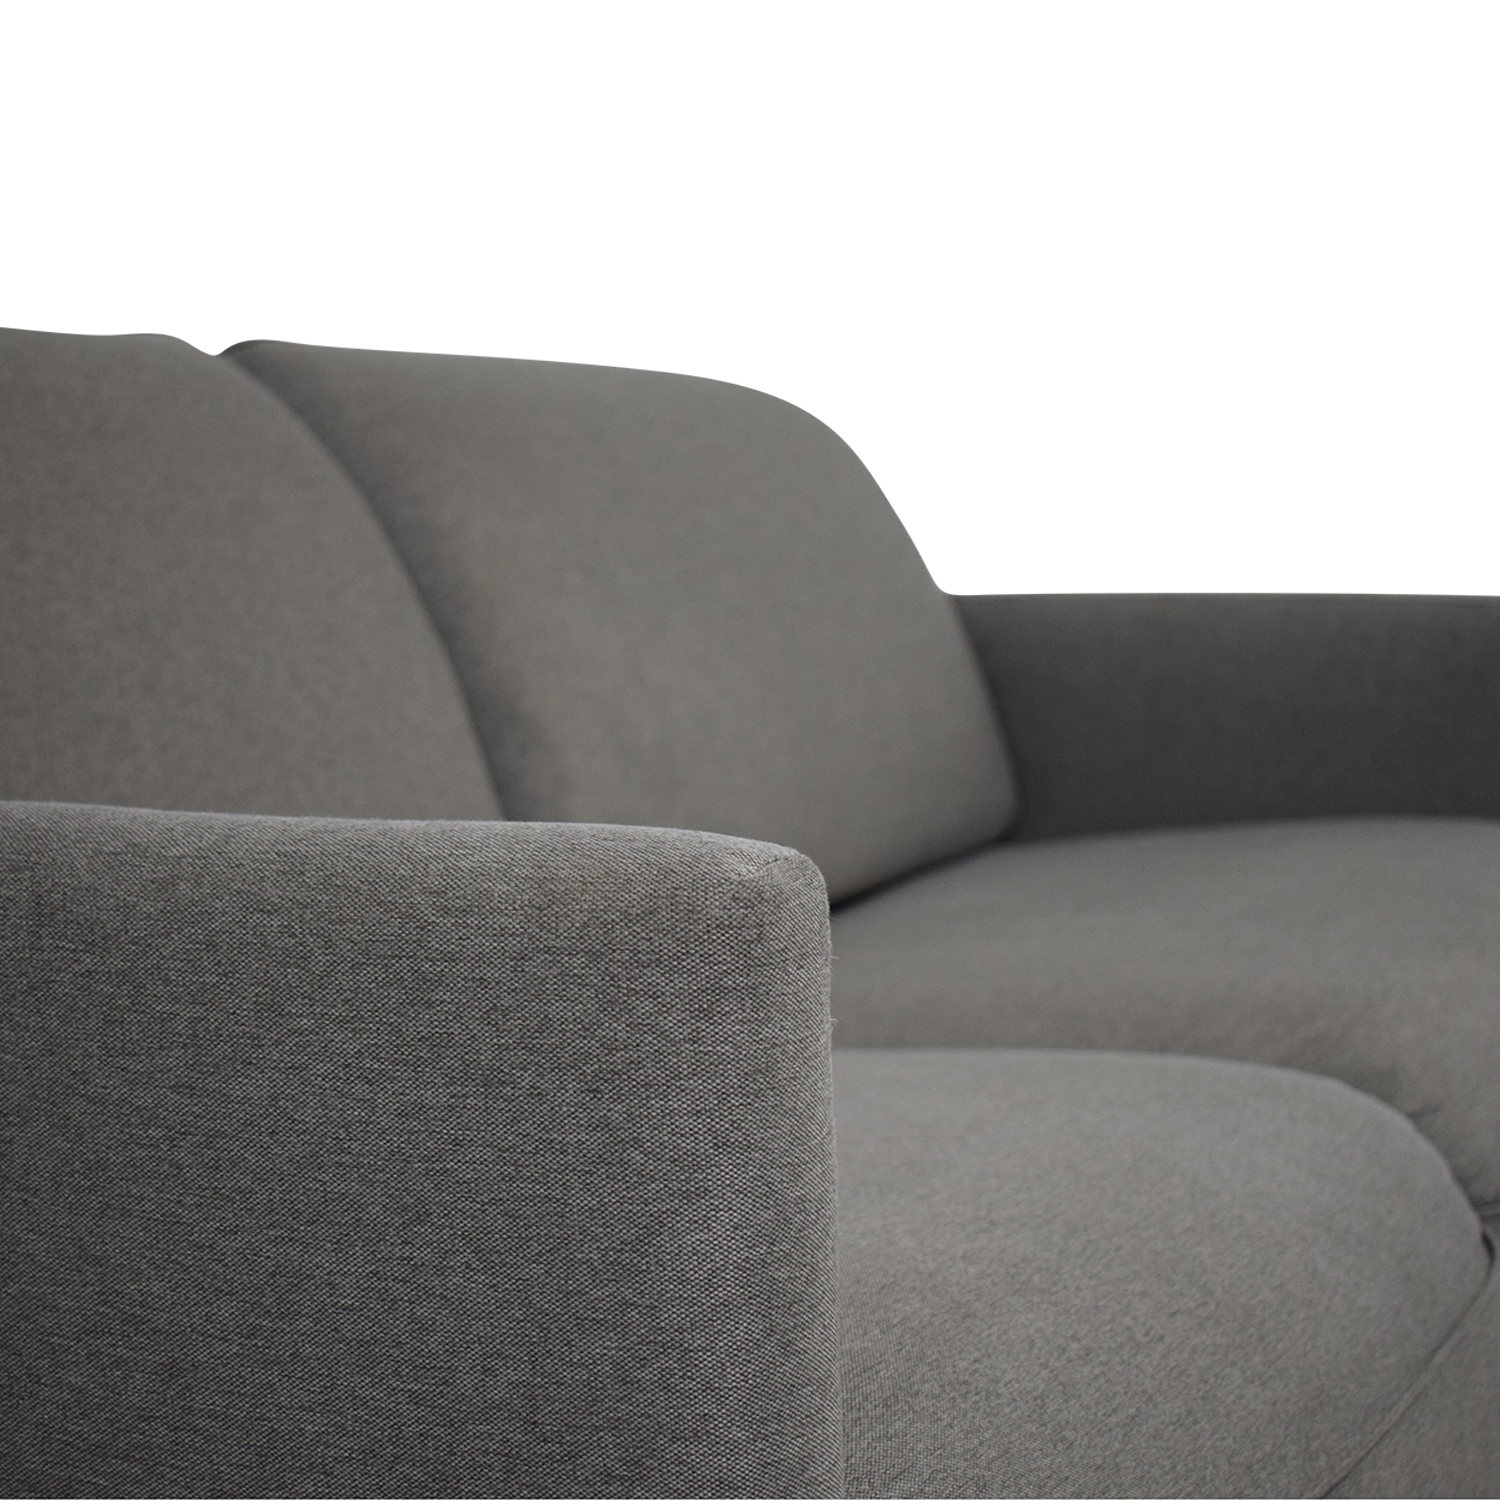 Fabulous 80 Off Habitat Habitat Bach Ii Sofa Sofas Caraccident5 Cool Chair Designs And Ideas Caraccident5Info